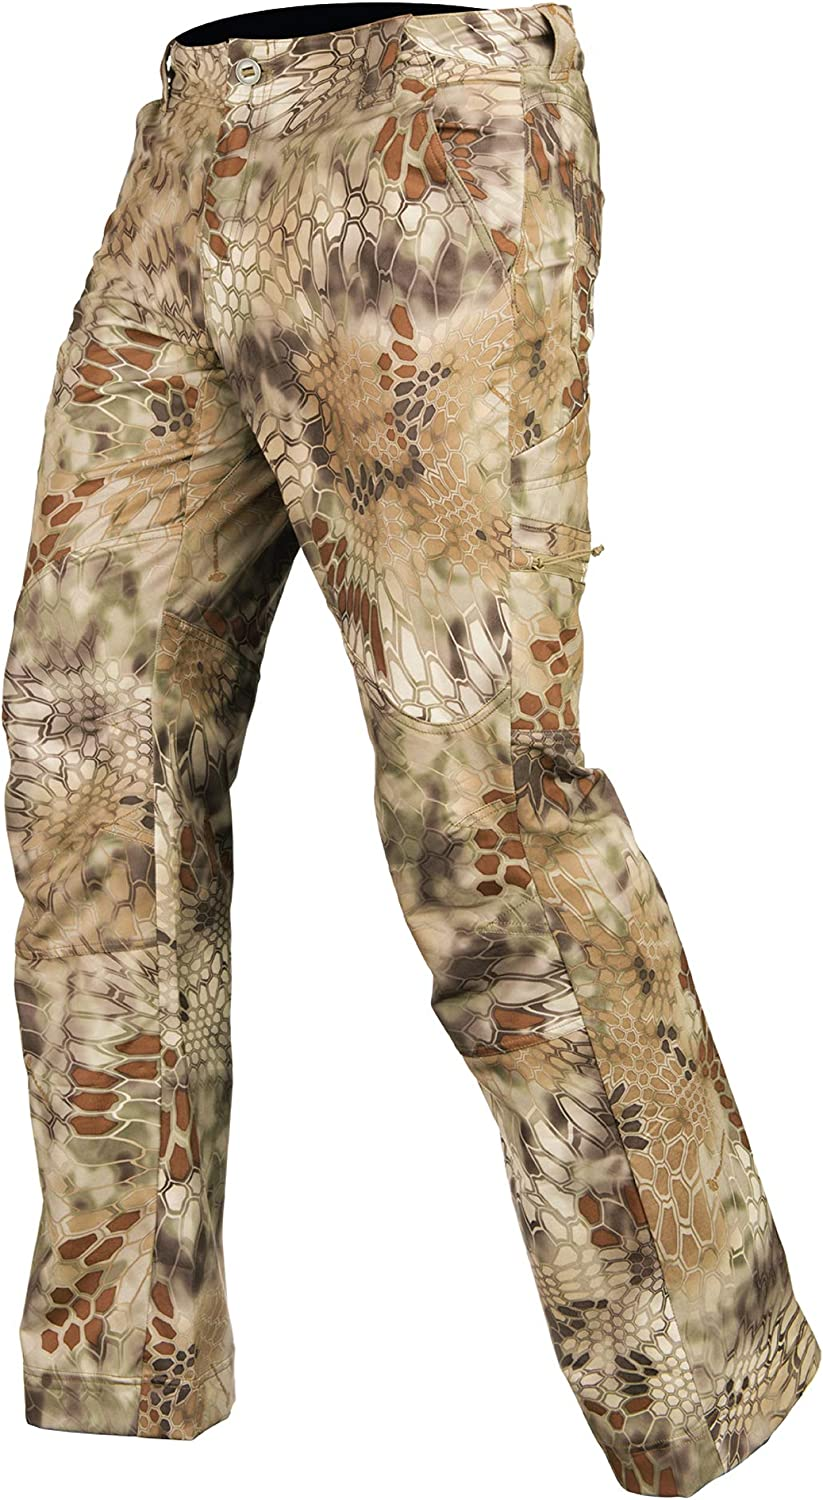 Kryptek Lightweight, Packable Valhalla Pant : Clothing